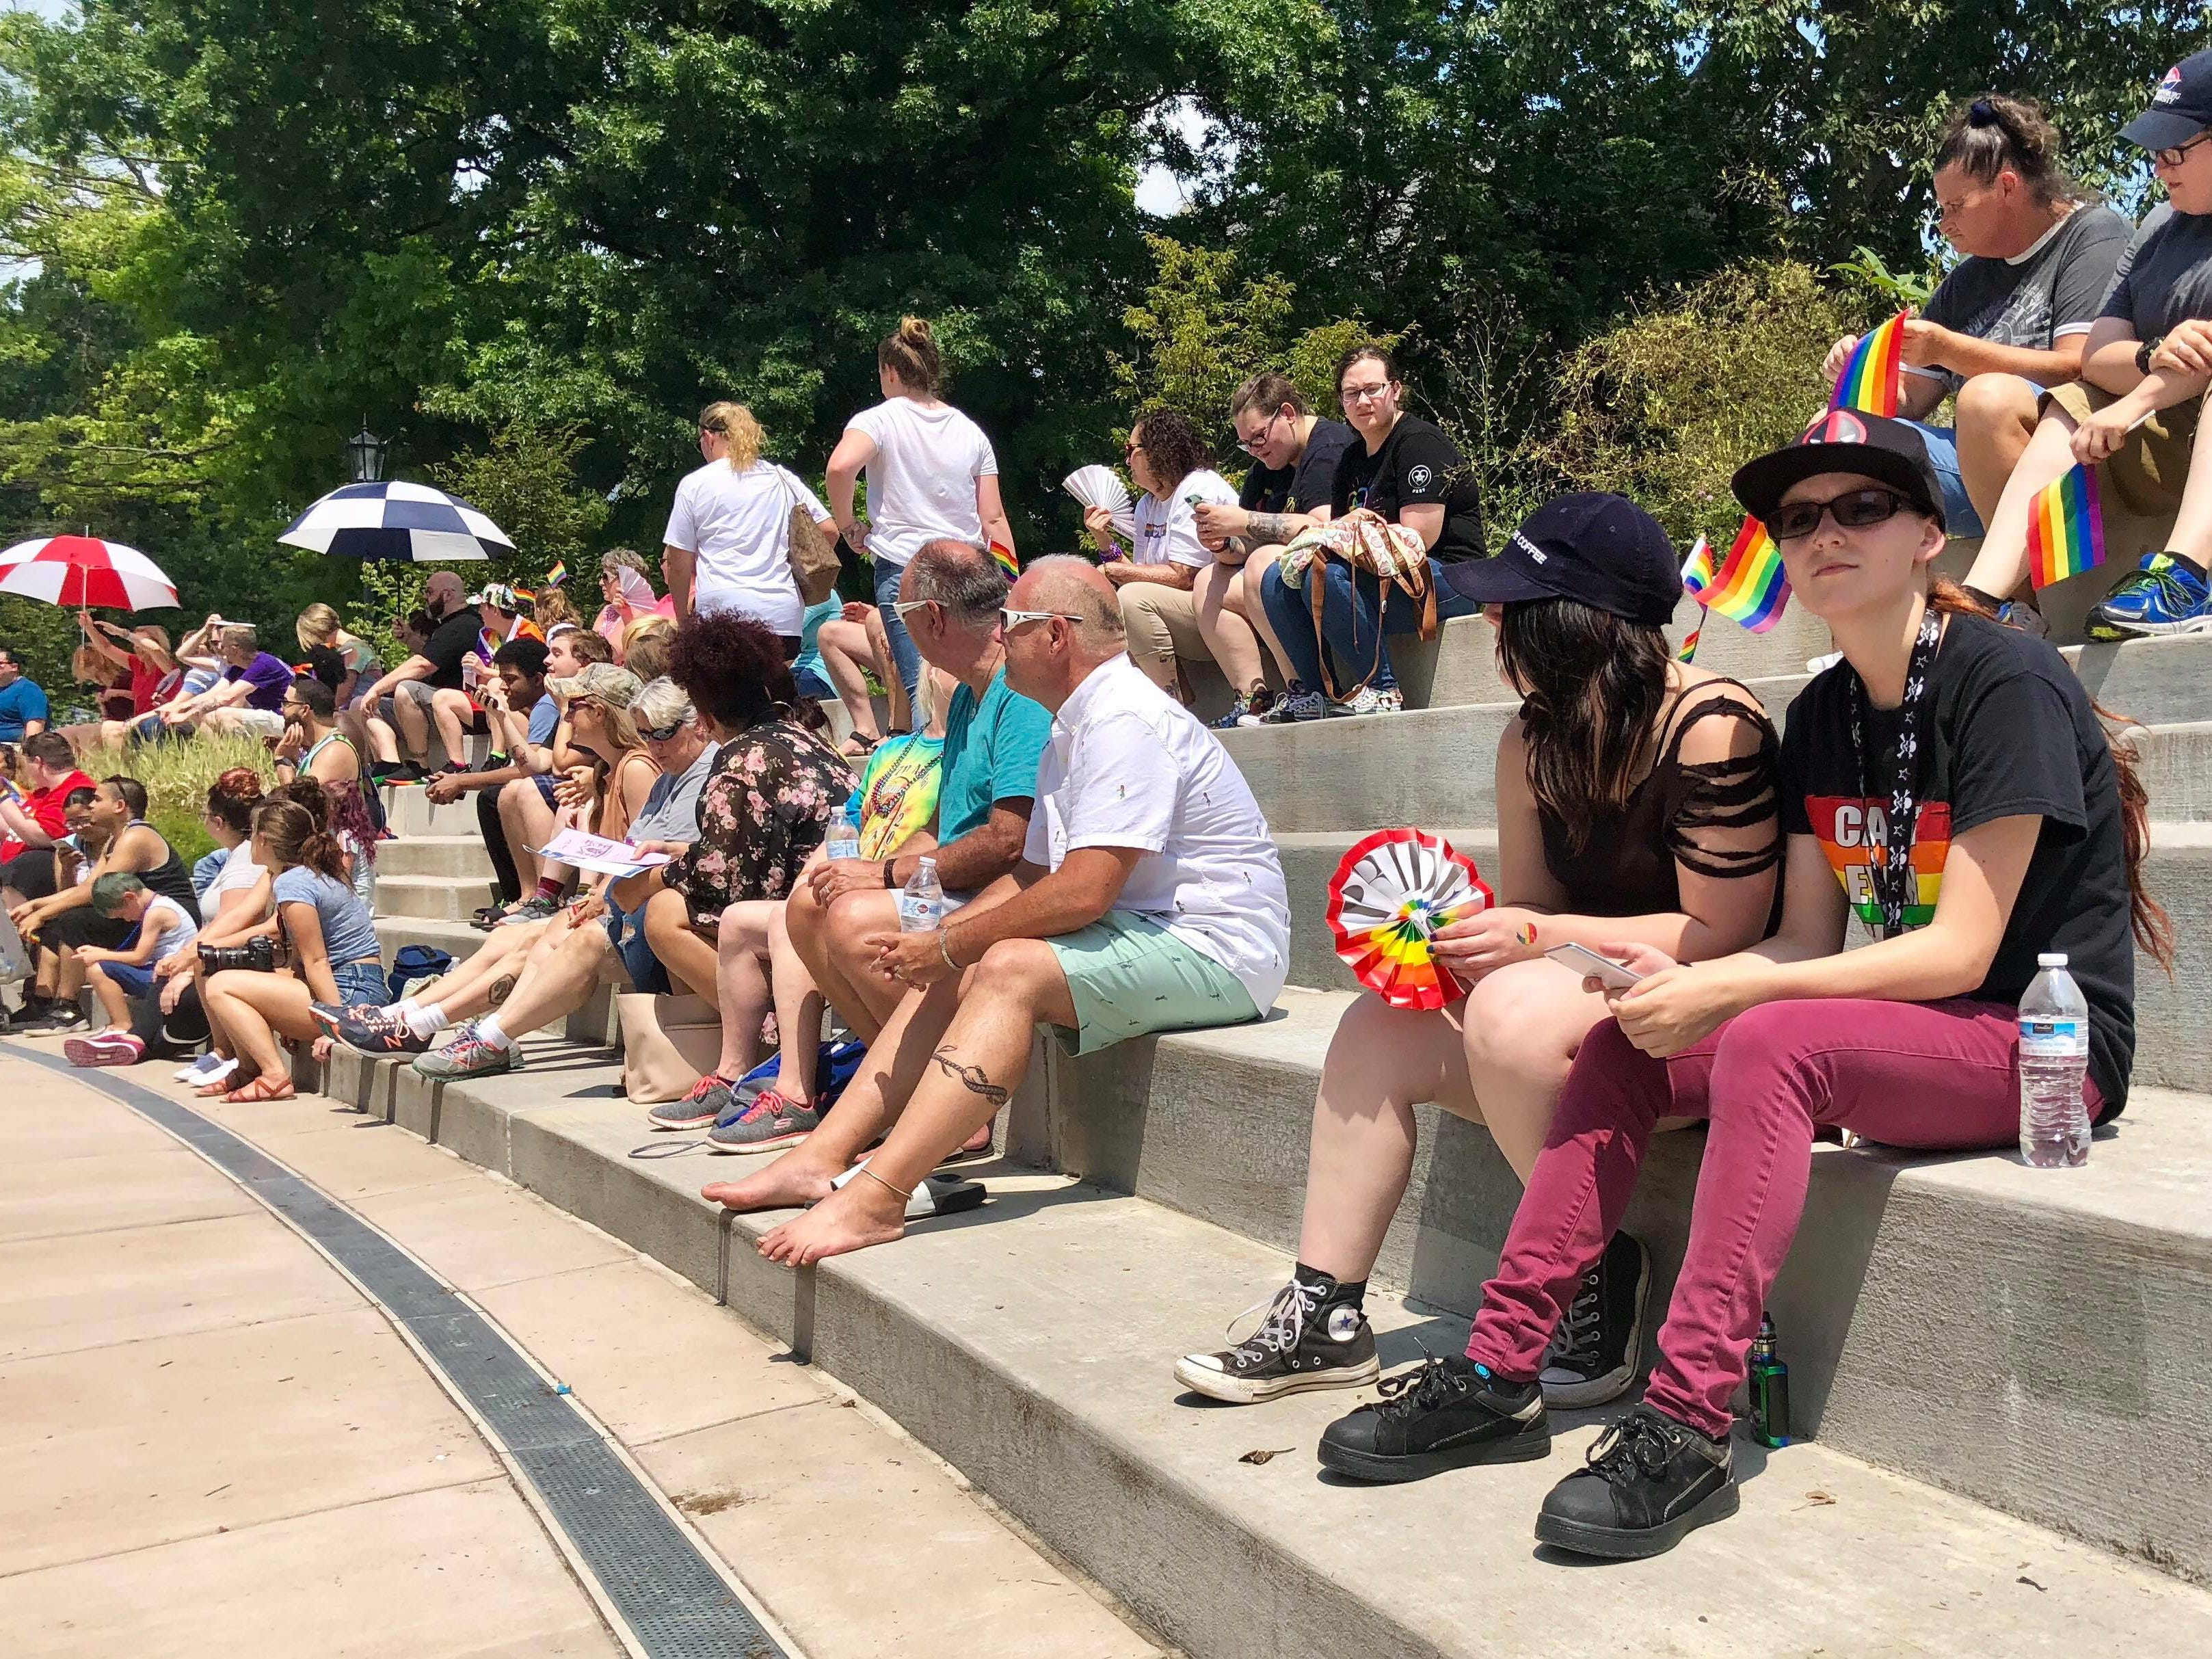 Attendees sit on the steps near the library at Wilson College in Chambersburg before the drag show starts during Franklin County's first Pride festival the afternoon of Sunday, Aug. 5, 2018.